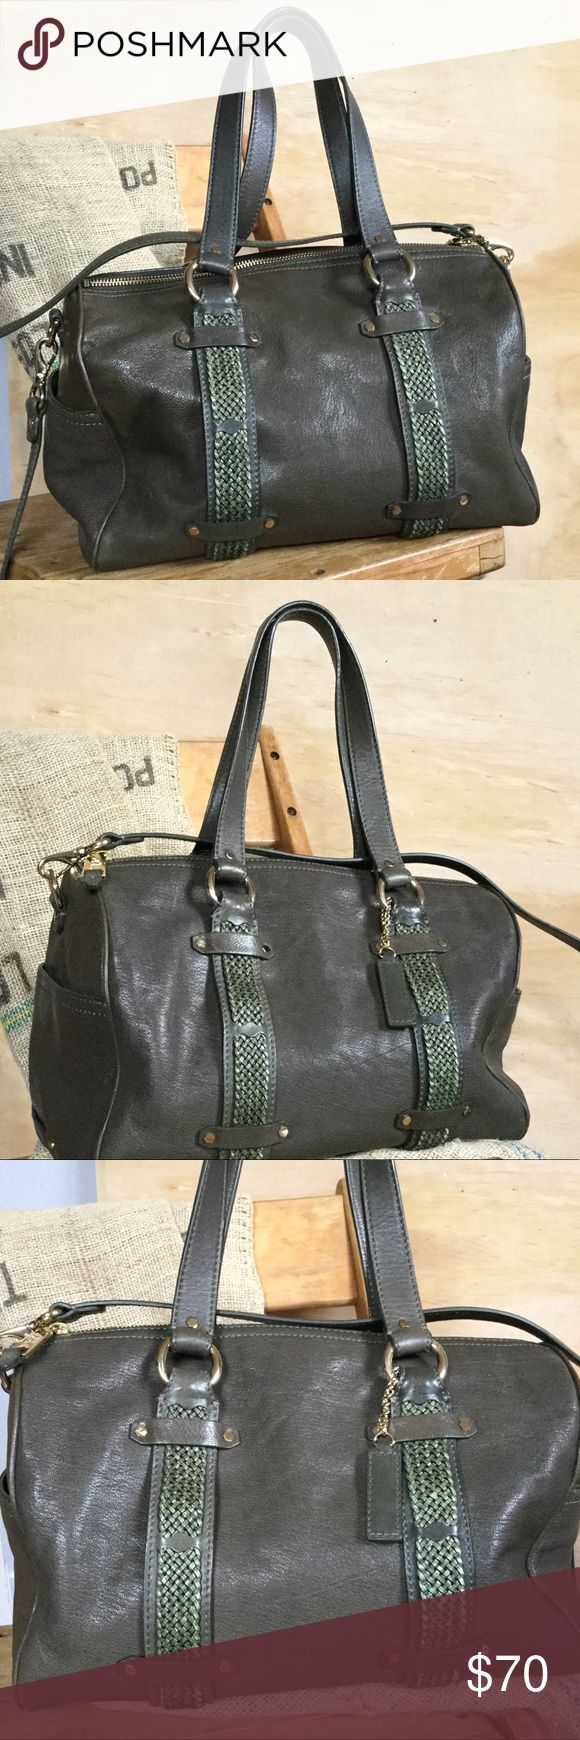 Cole Haan dark green leather tote This is a Cole Haan very dark green leather purse. Excellent condition! No scratches, scuffing or cracking. The interior is in intact with no stains. Detachable shoulder strap. This purse has been used, but well taken care of. Cole Haan Bags Totes